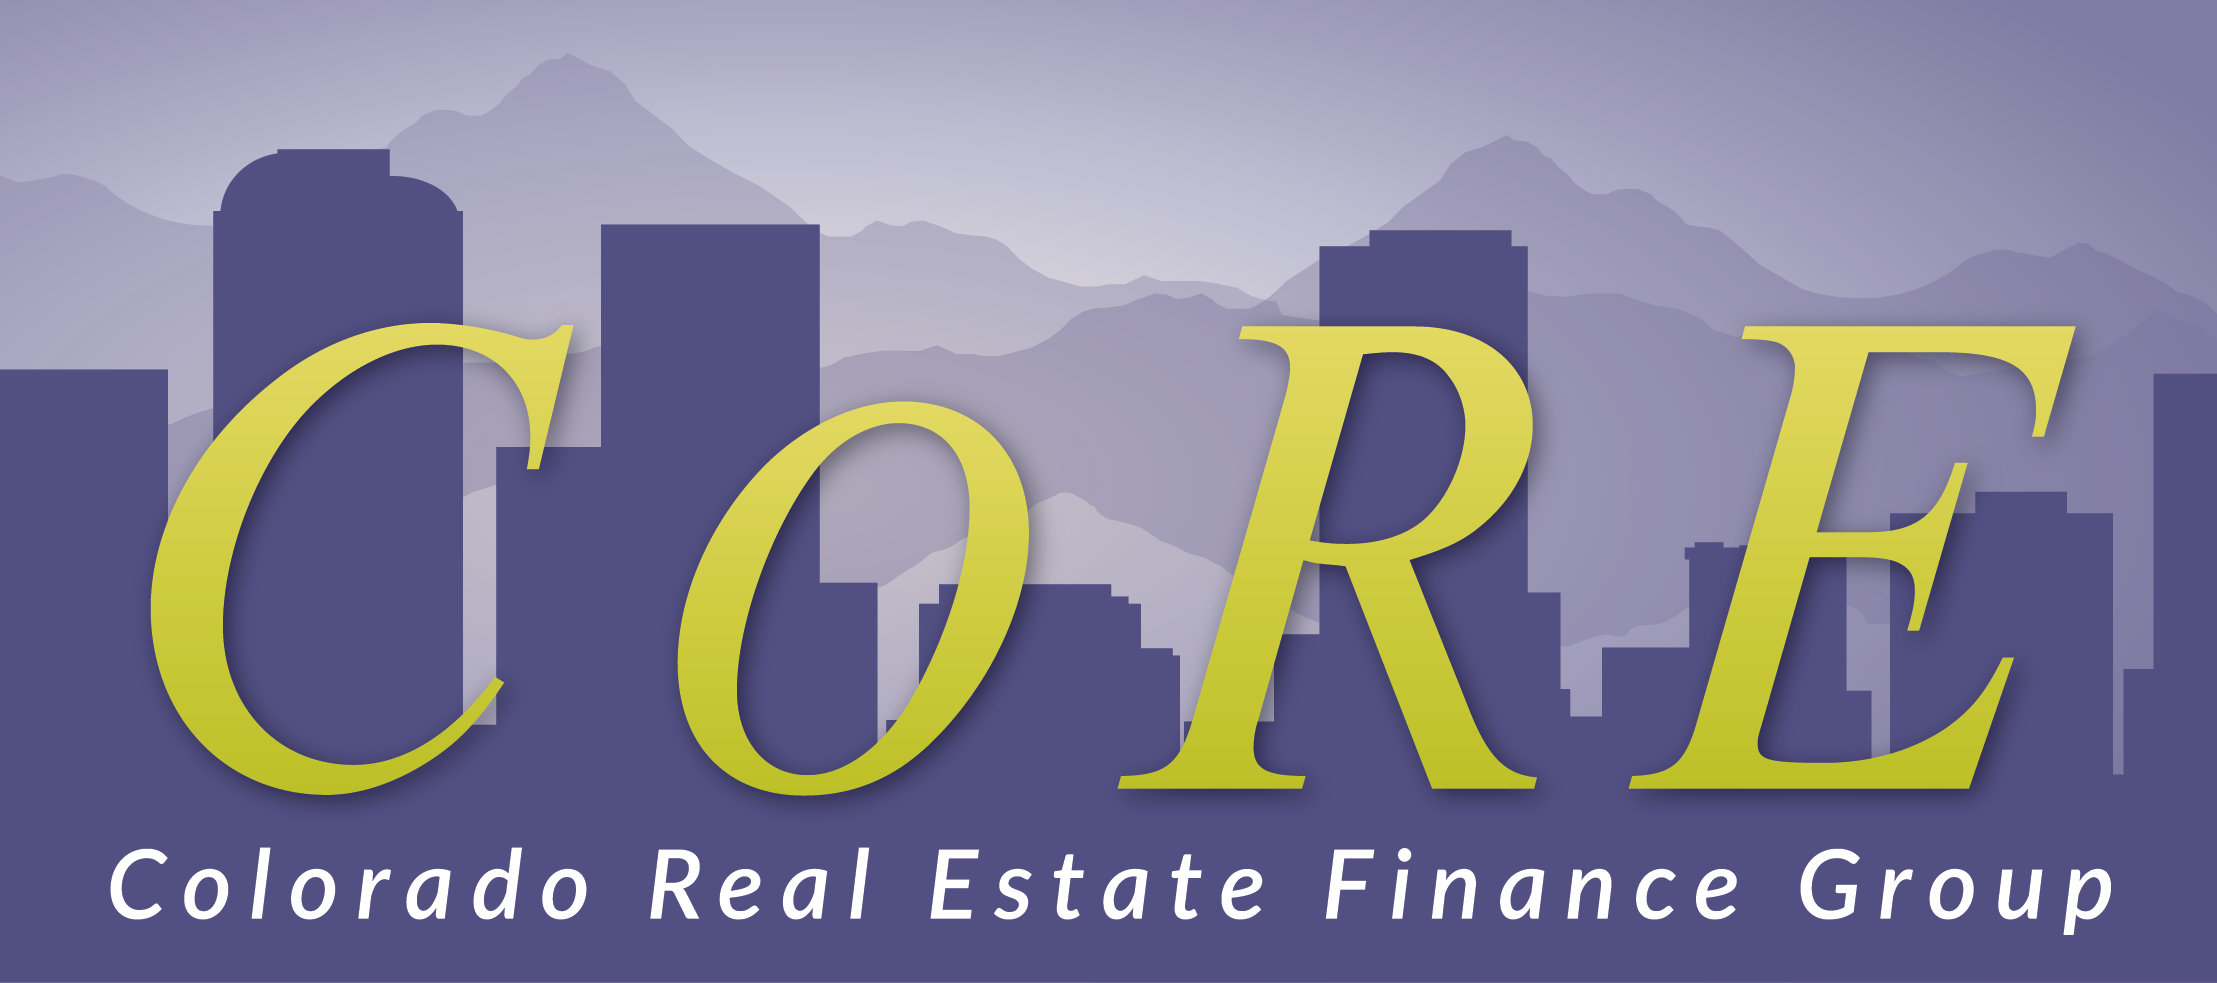 Colorado Real Estate Finance Group